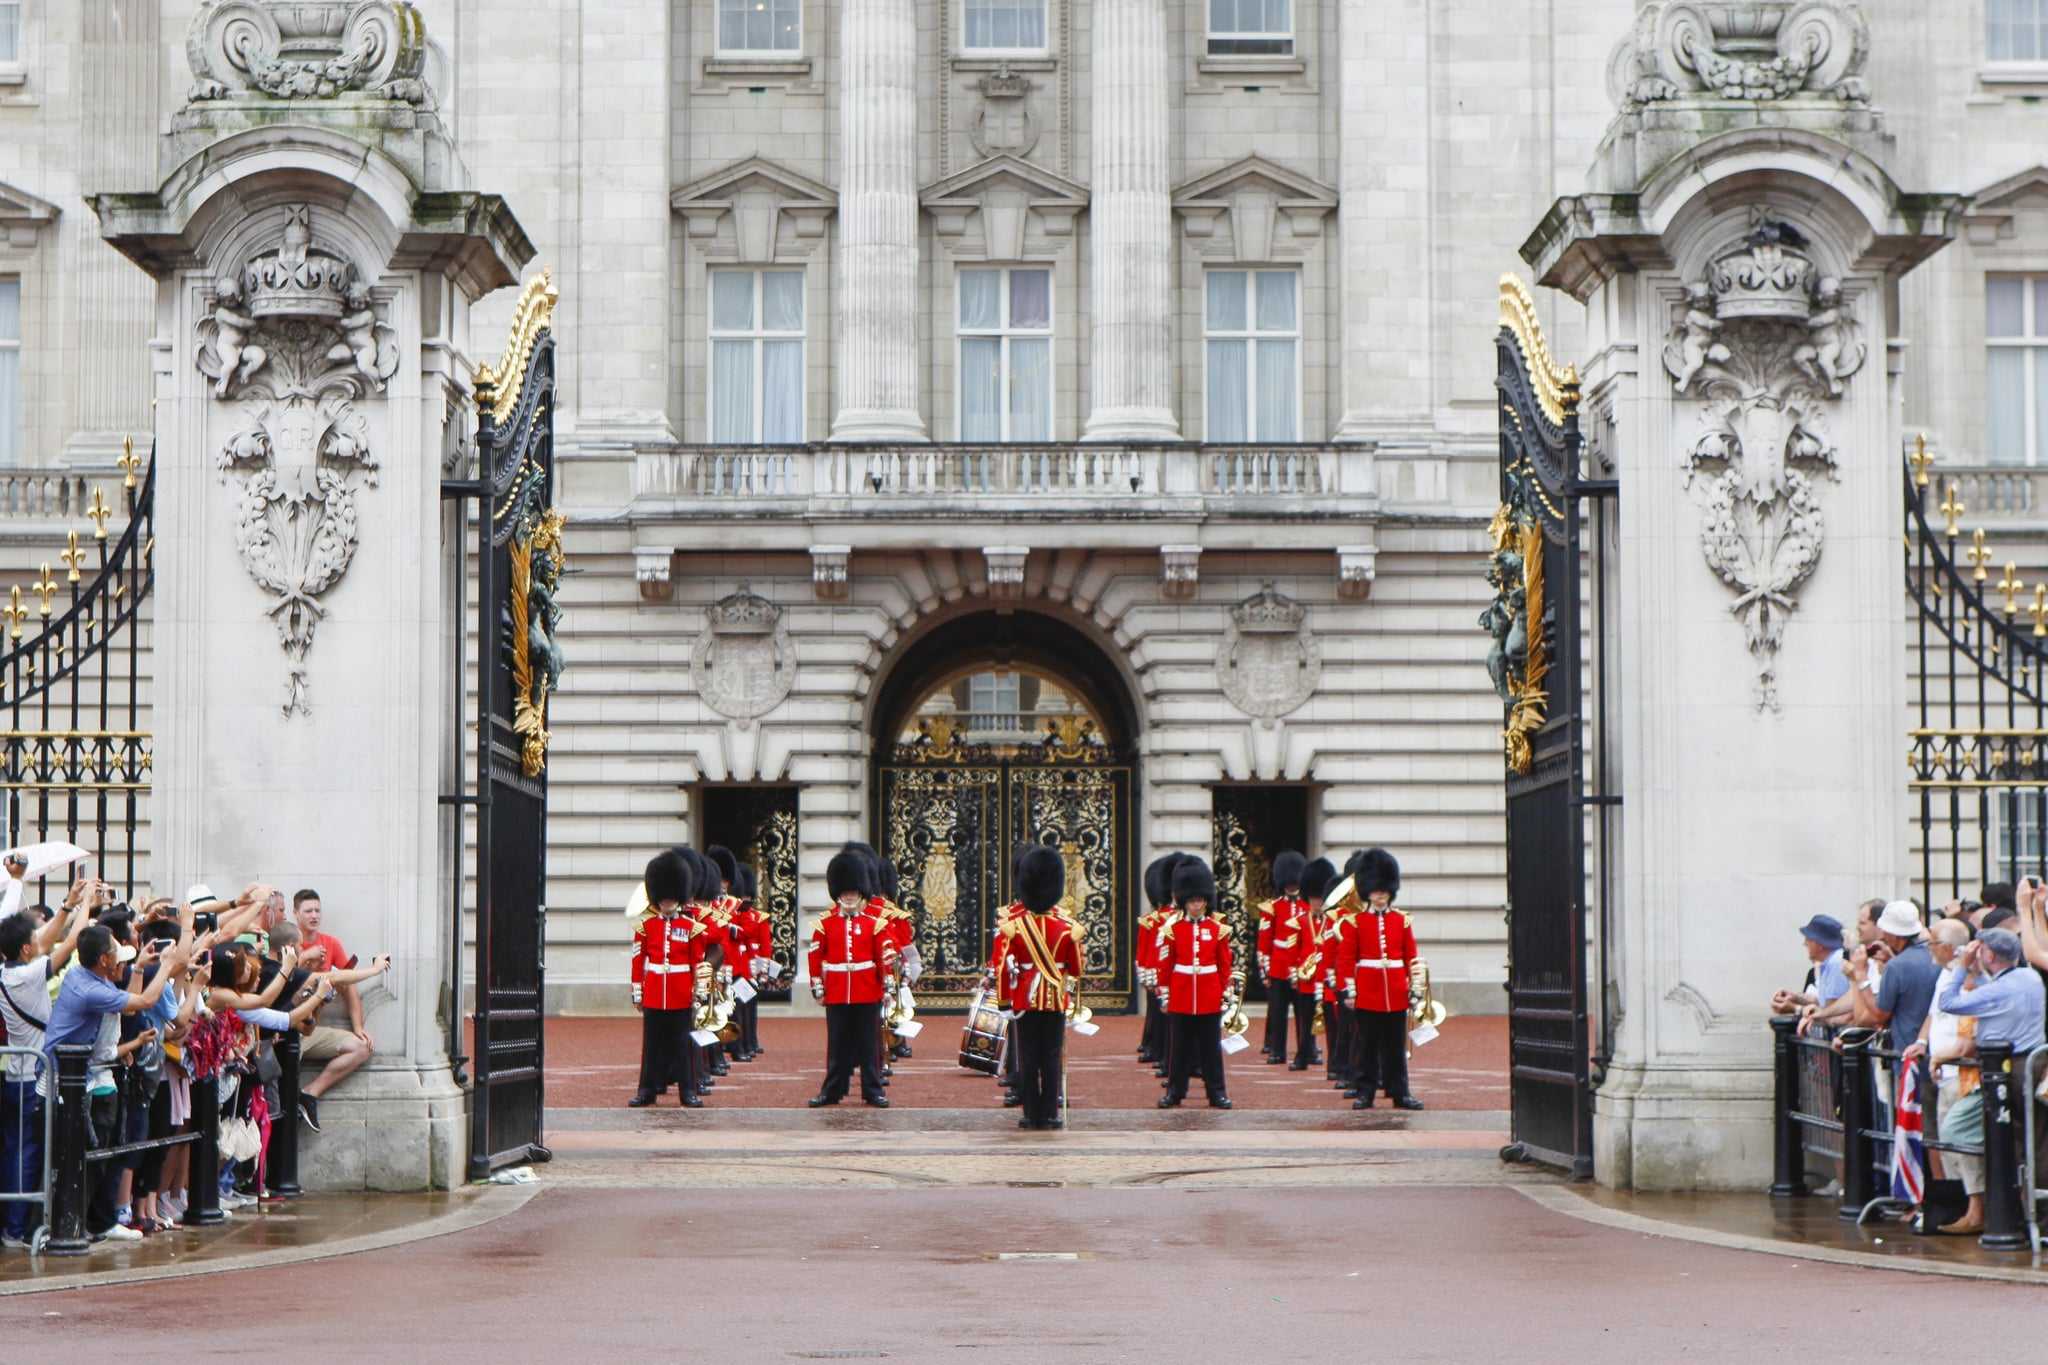 People flocked to Buckingham Palace the day after the baby was born for a chance to see the official bulletin on the easel along with the Changing of the Guard.